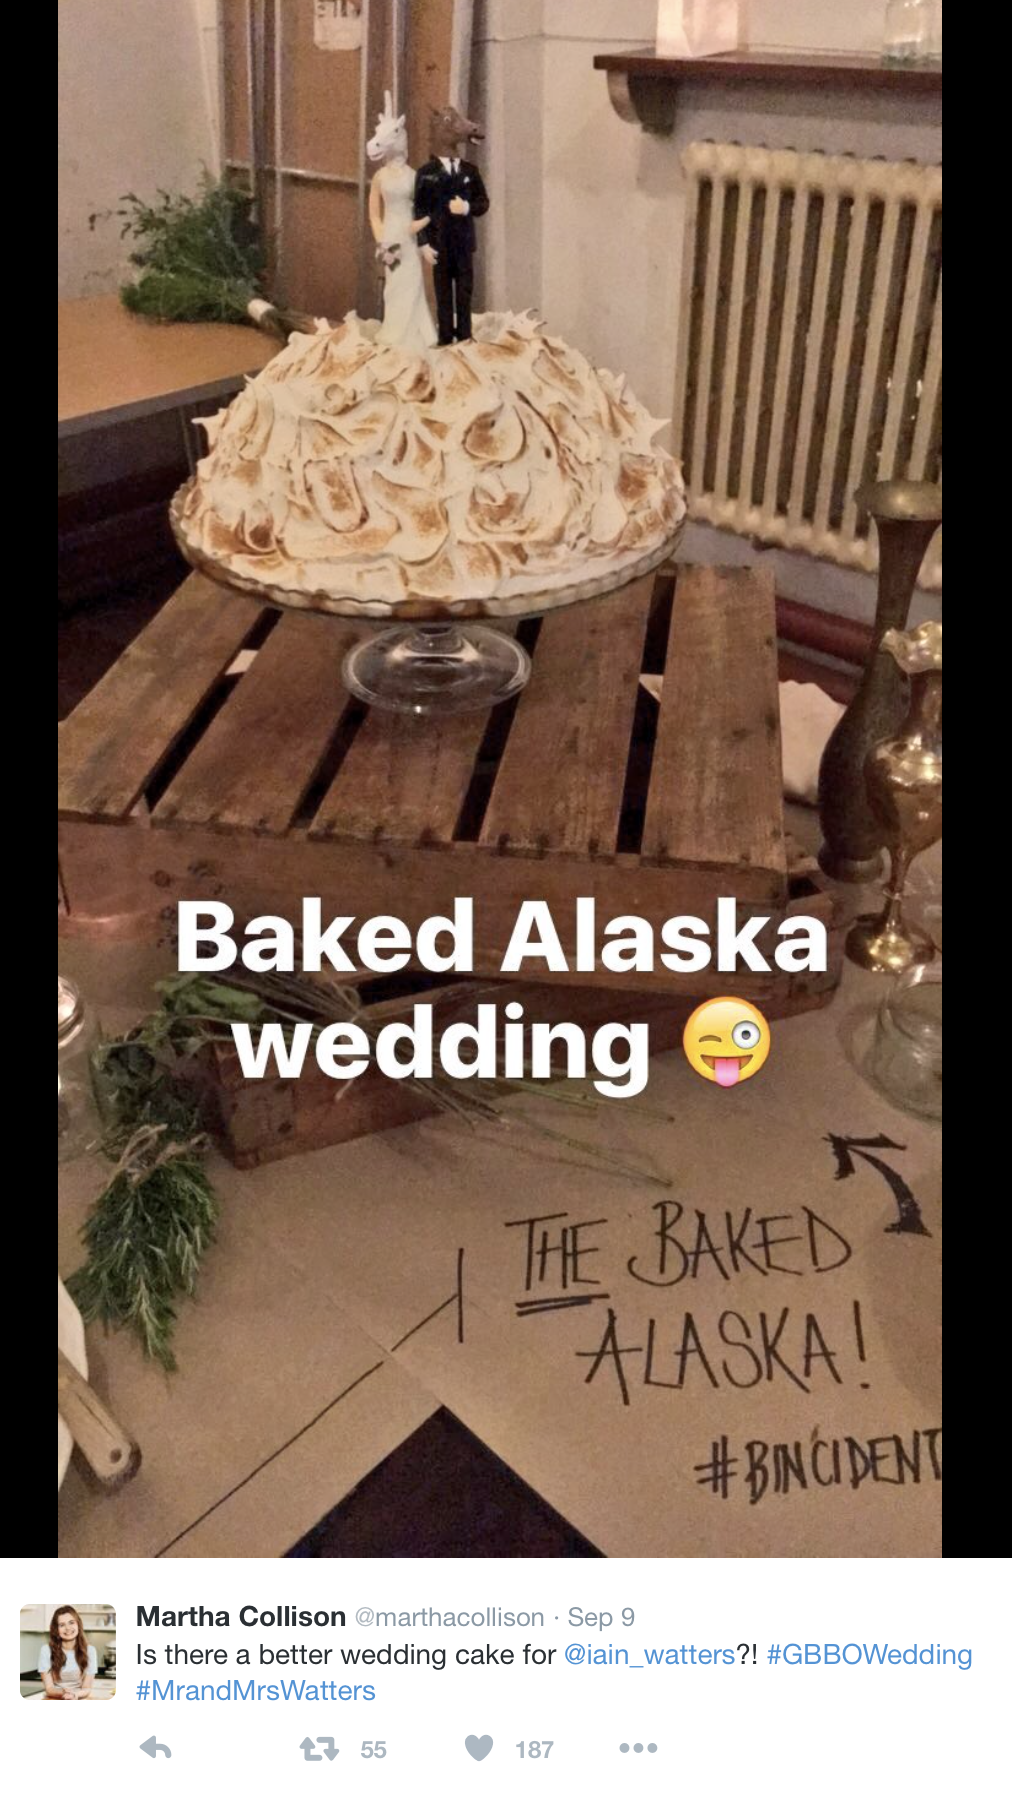 Guess what cake Bin Gate Bake Off Star Iain Watters had at his wedding?